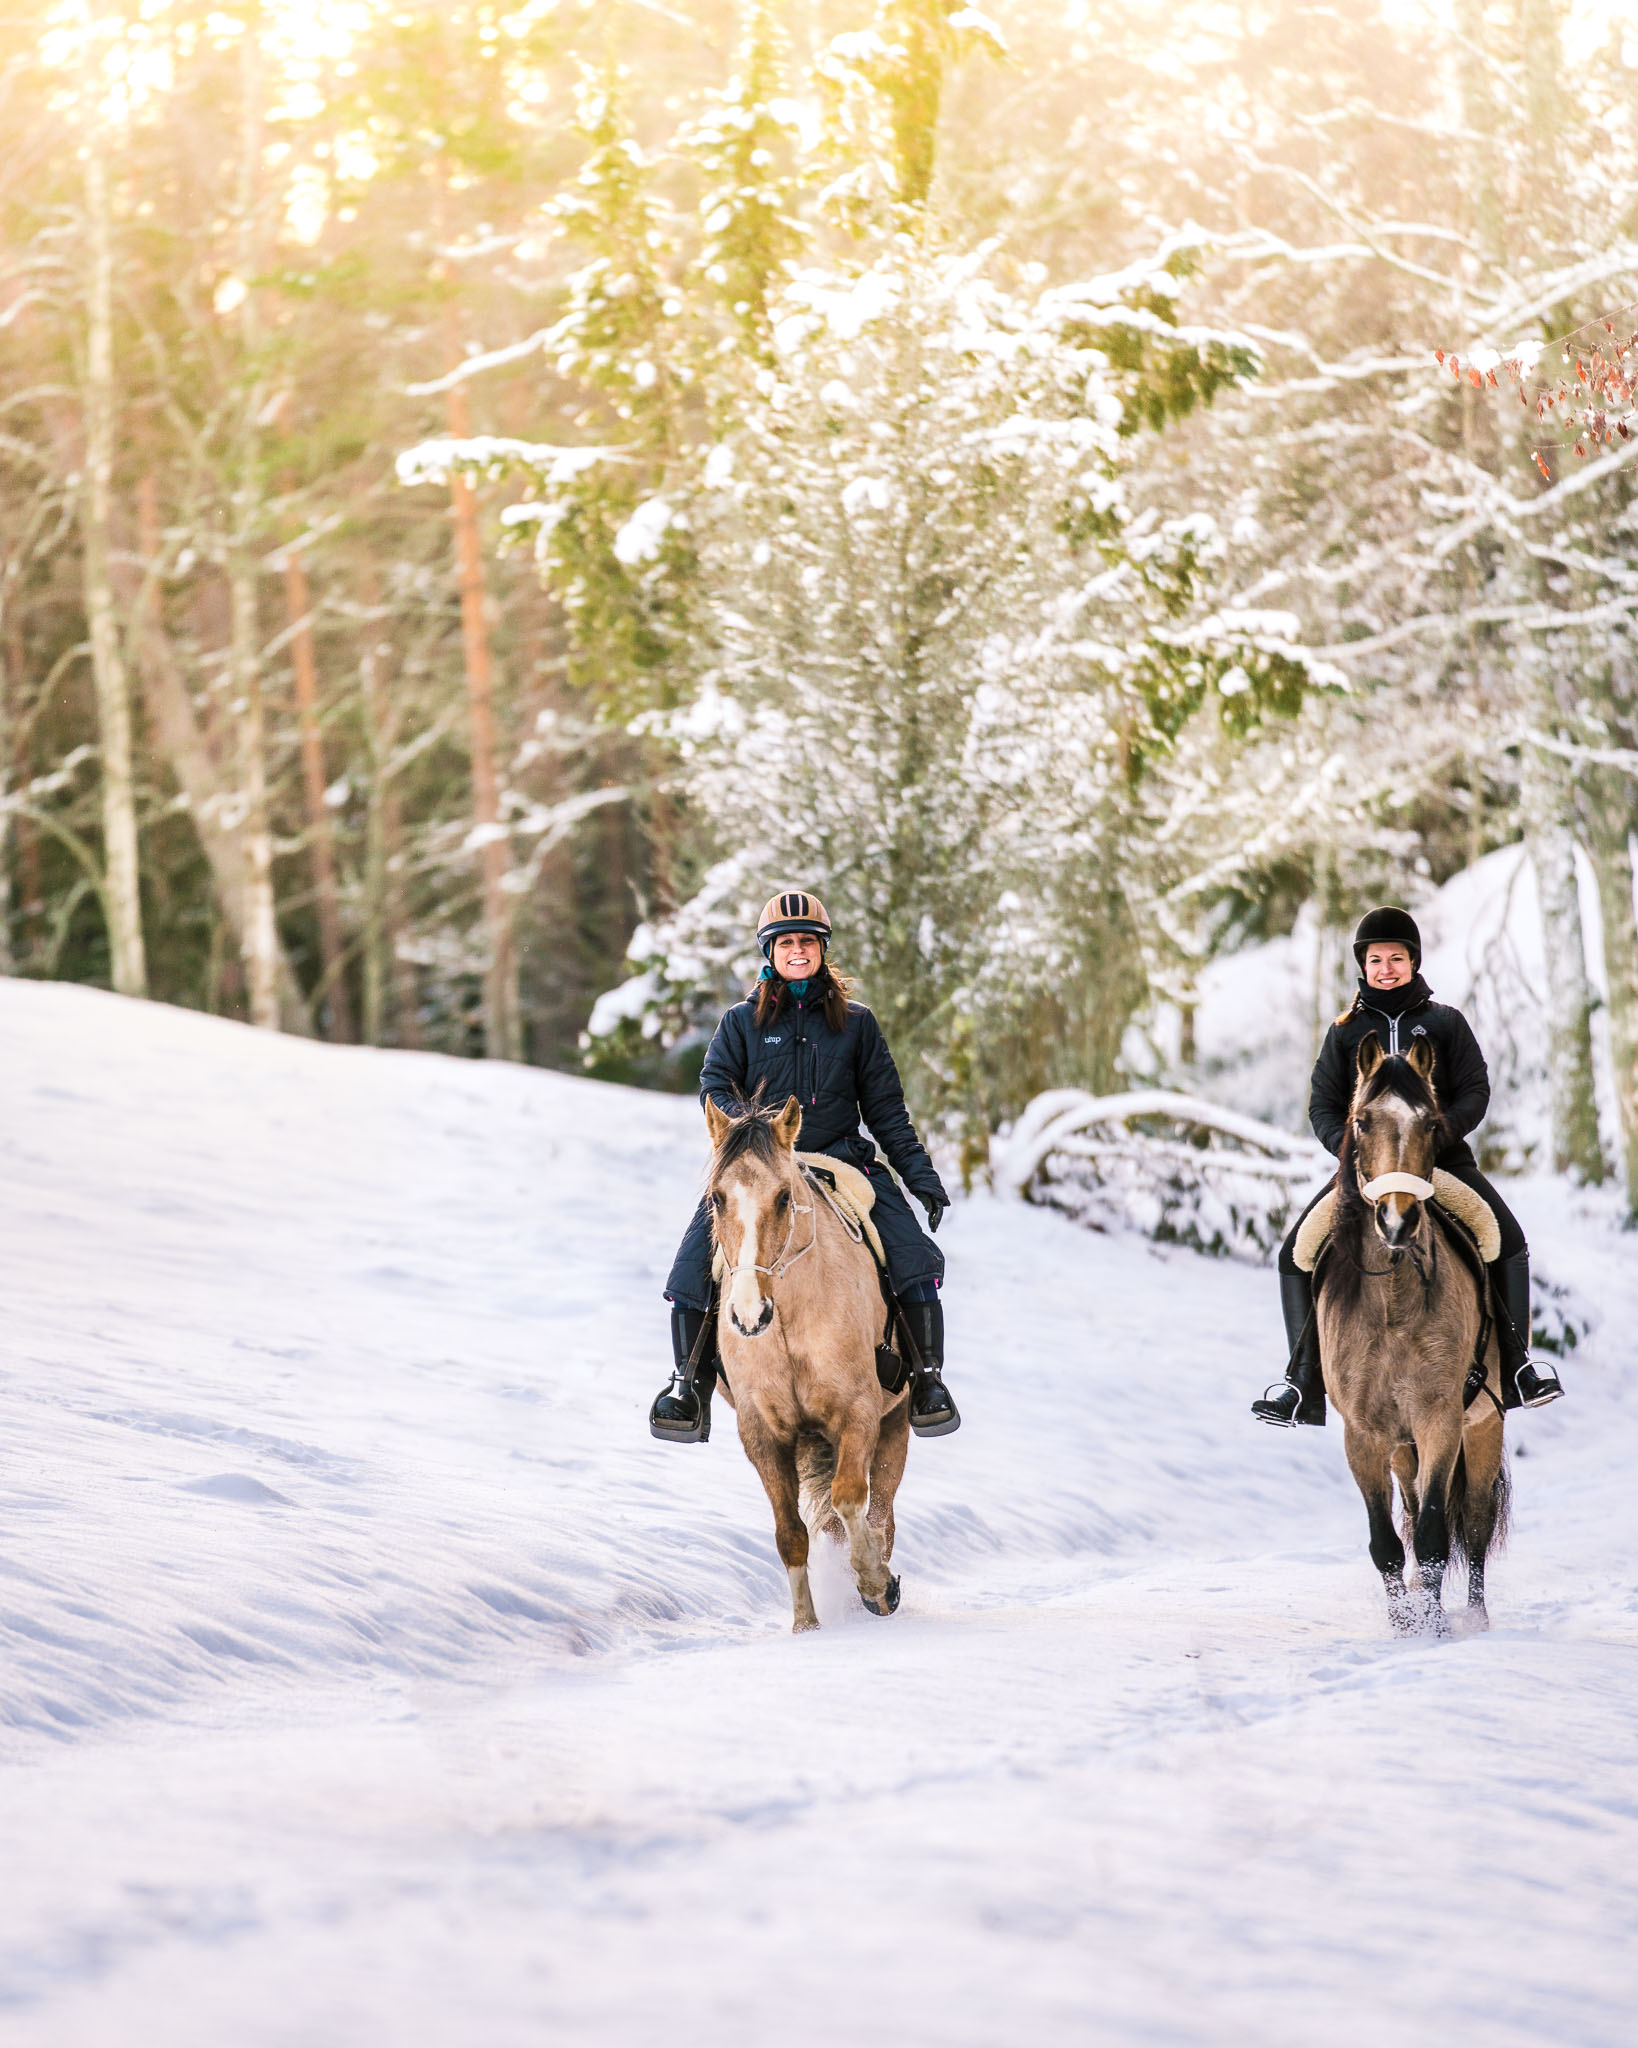 sweden-nature-outdoor-winter-riding-horses